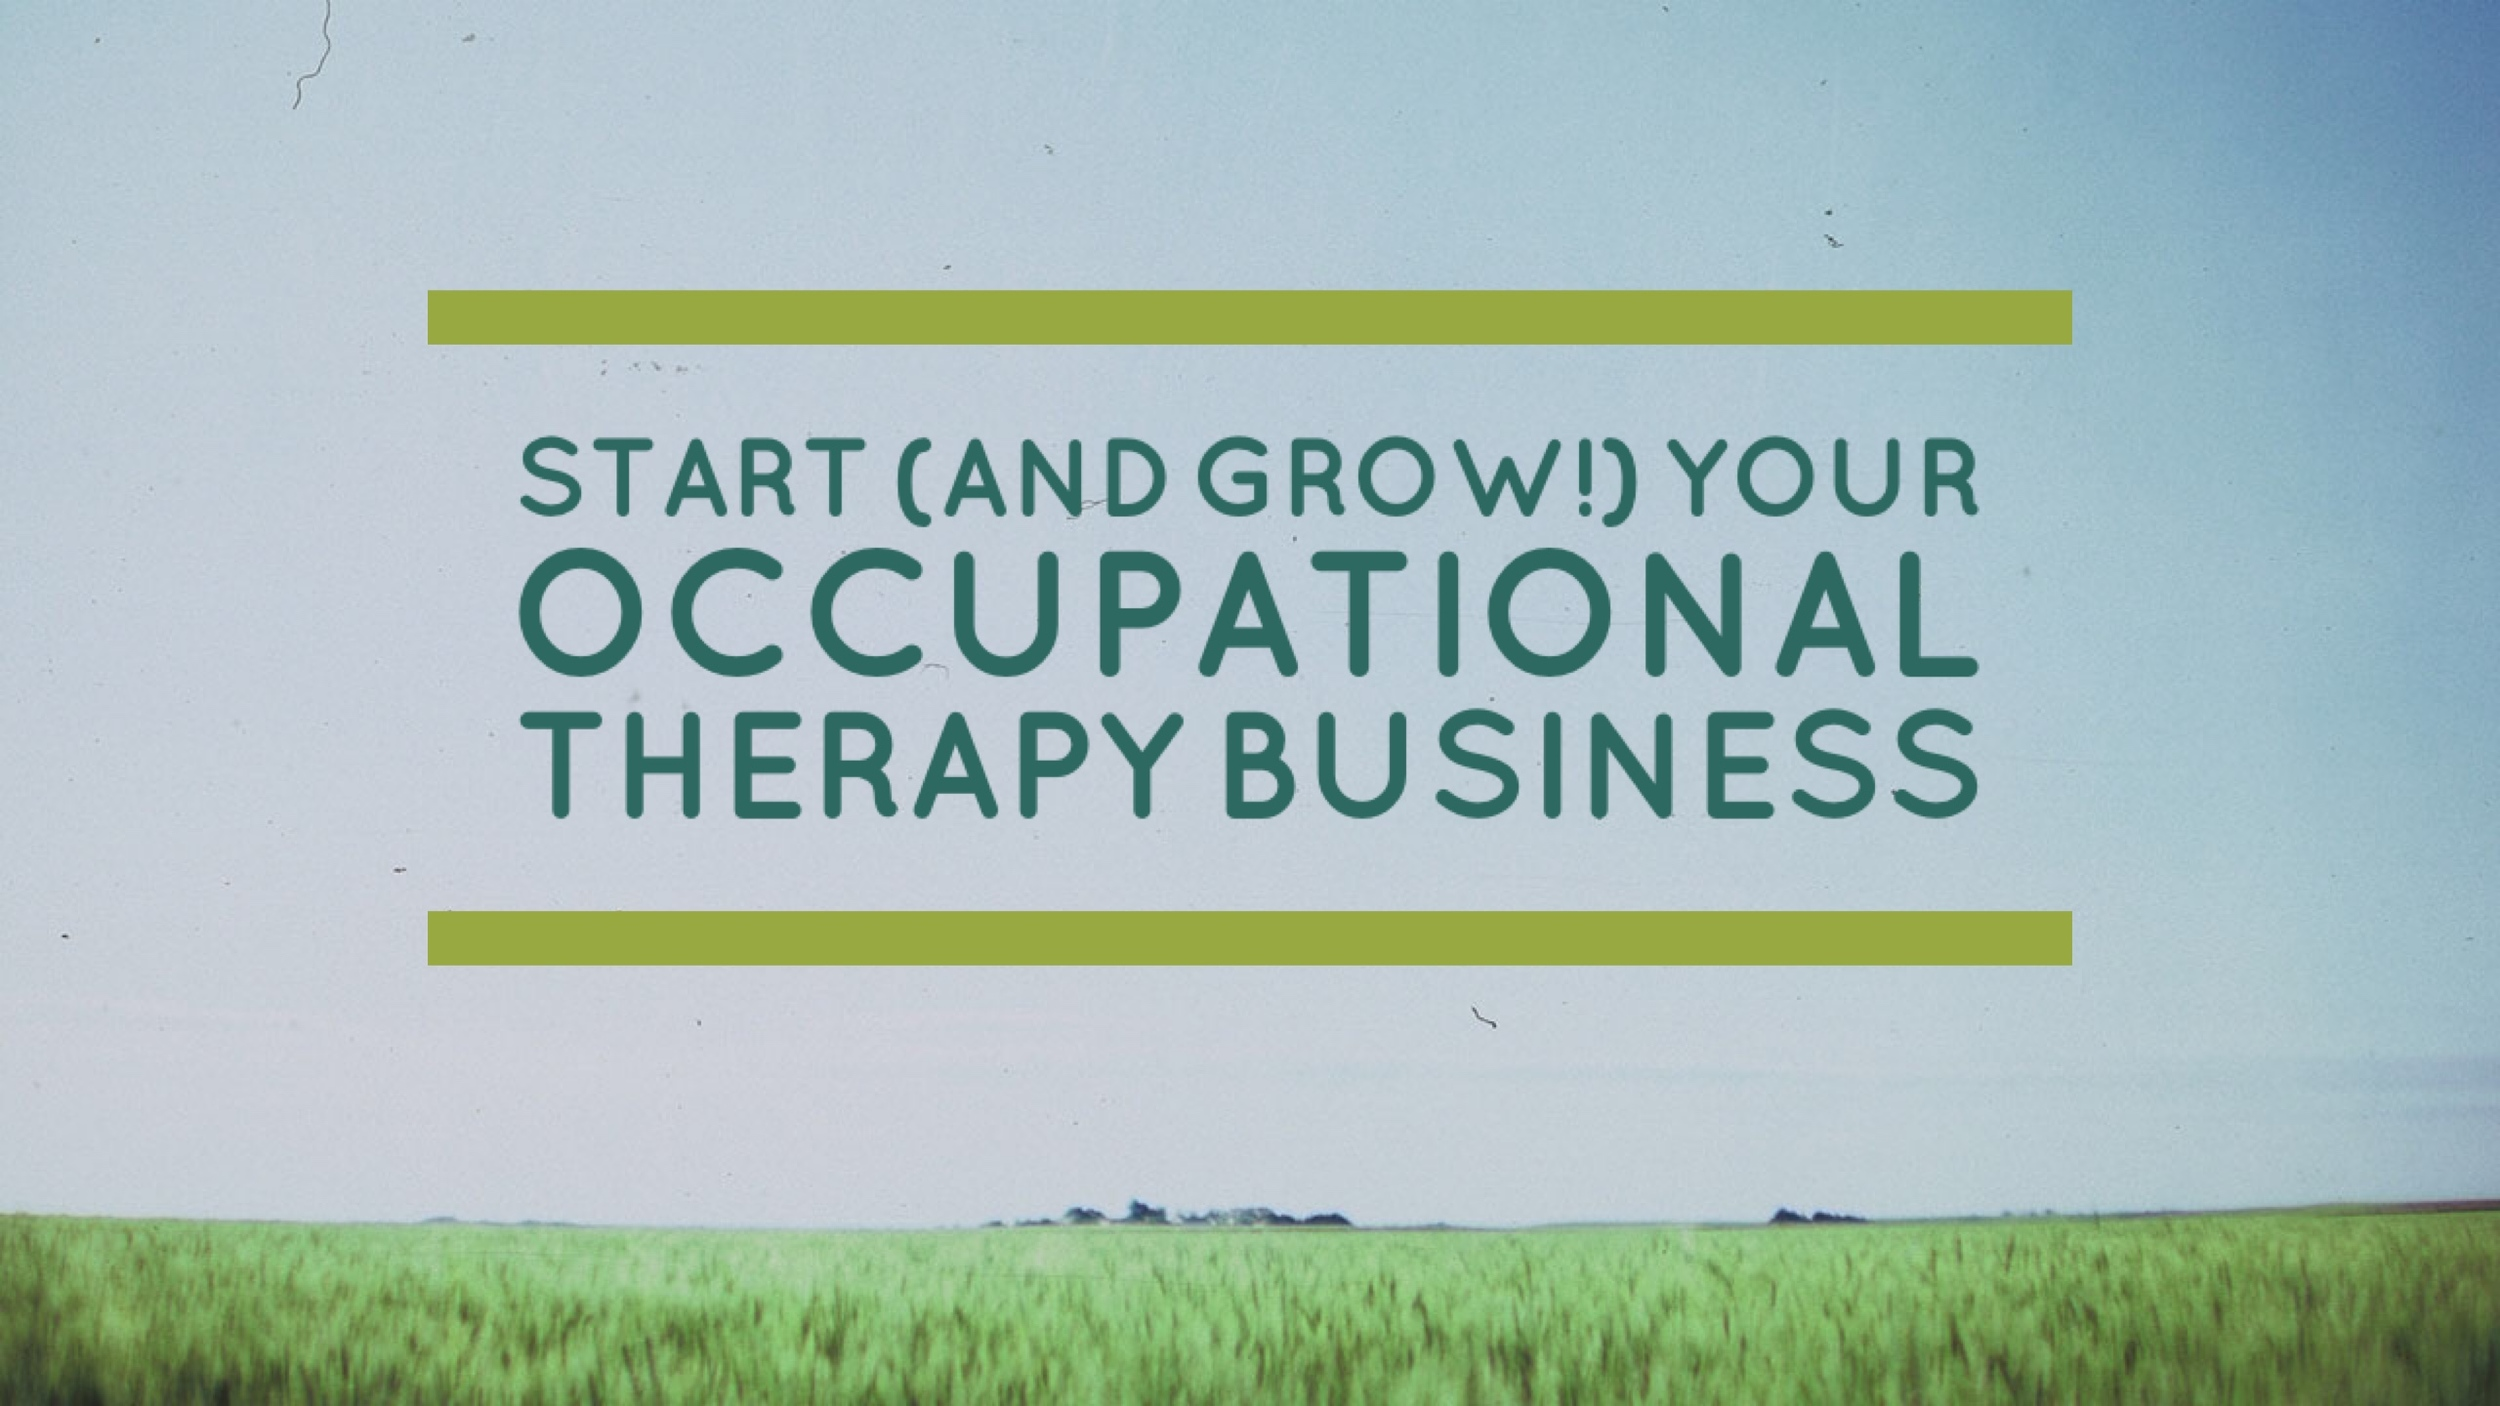 Apr 27 Resources To Start (and Grow) Your Occupational Therapy Business